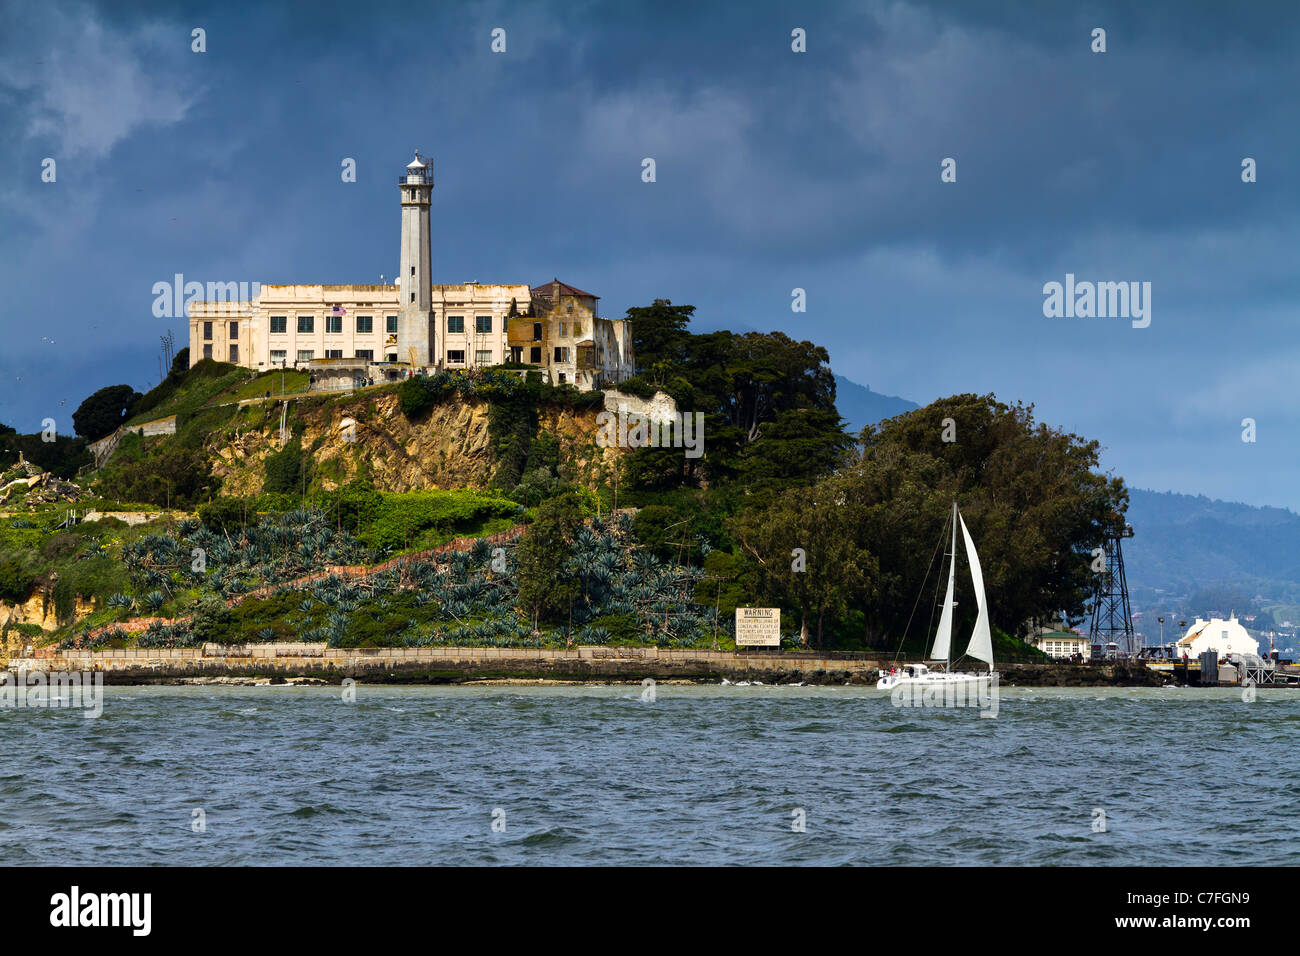 Alcatraz island dramatically spotlit by a break in the clouds as a sailboat passes near its shore. - Stock Image